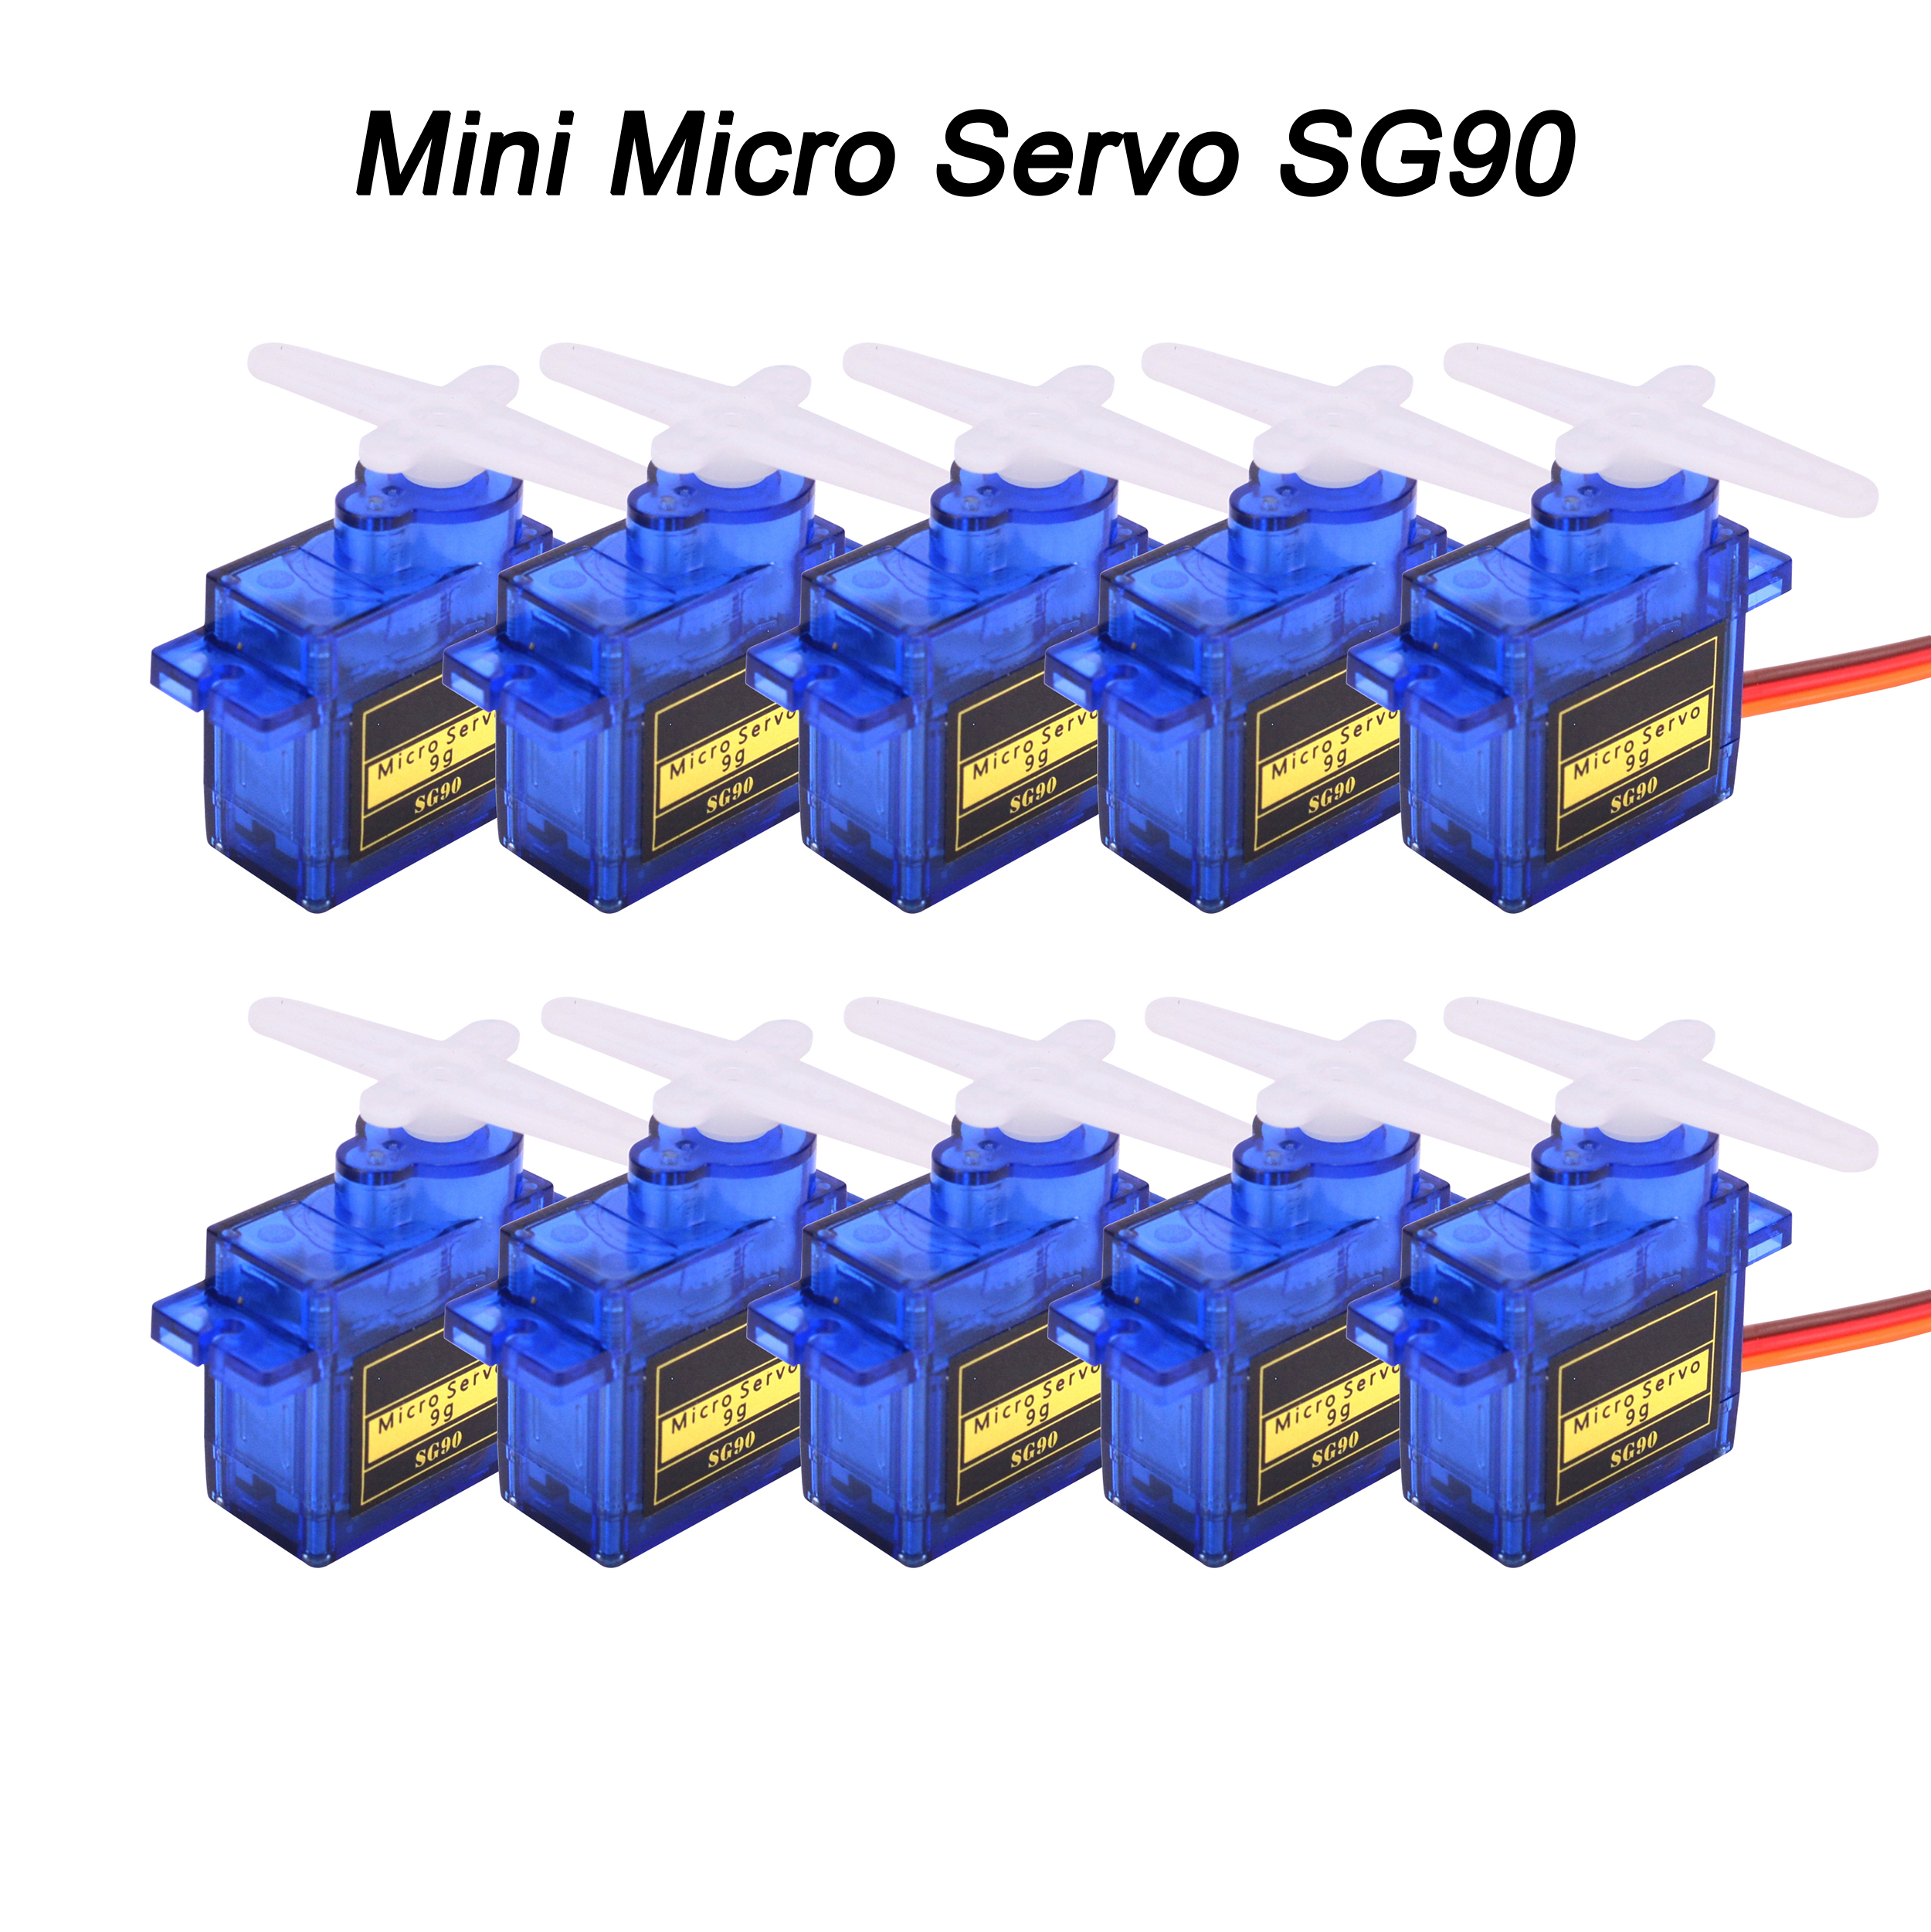 5pcs / 10pcs / 20pcs / 50pcs / 100pcs / 200pcs Lot New SG90 SG 90 9G Mini Micro Servo For RC 250 450 Helicopter Airplane Car RC